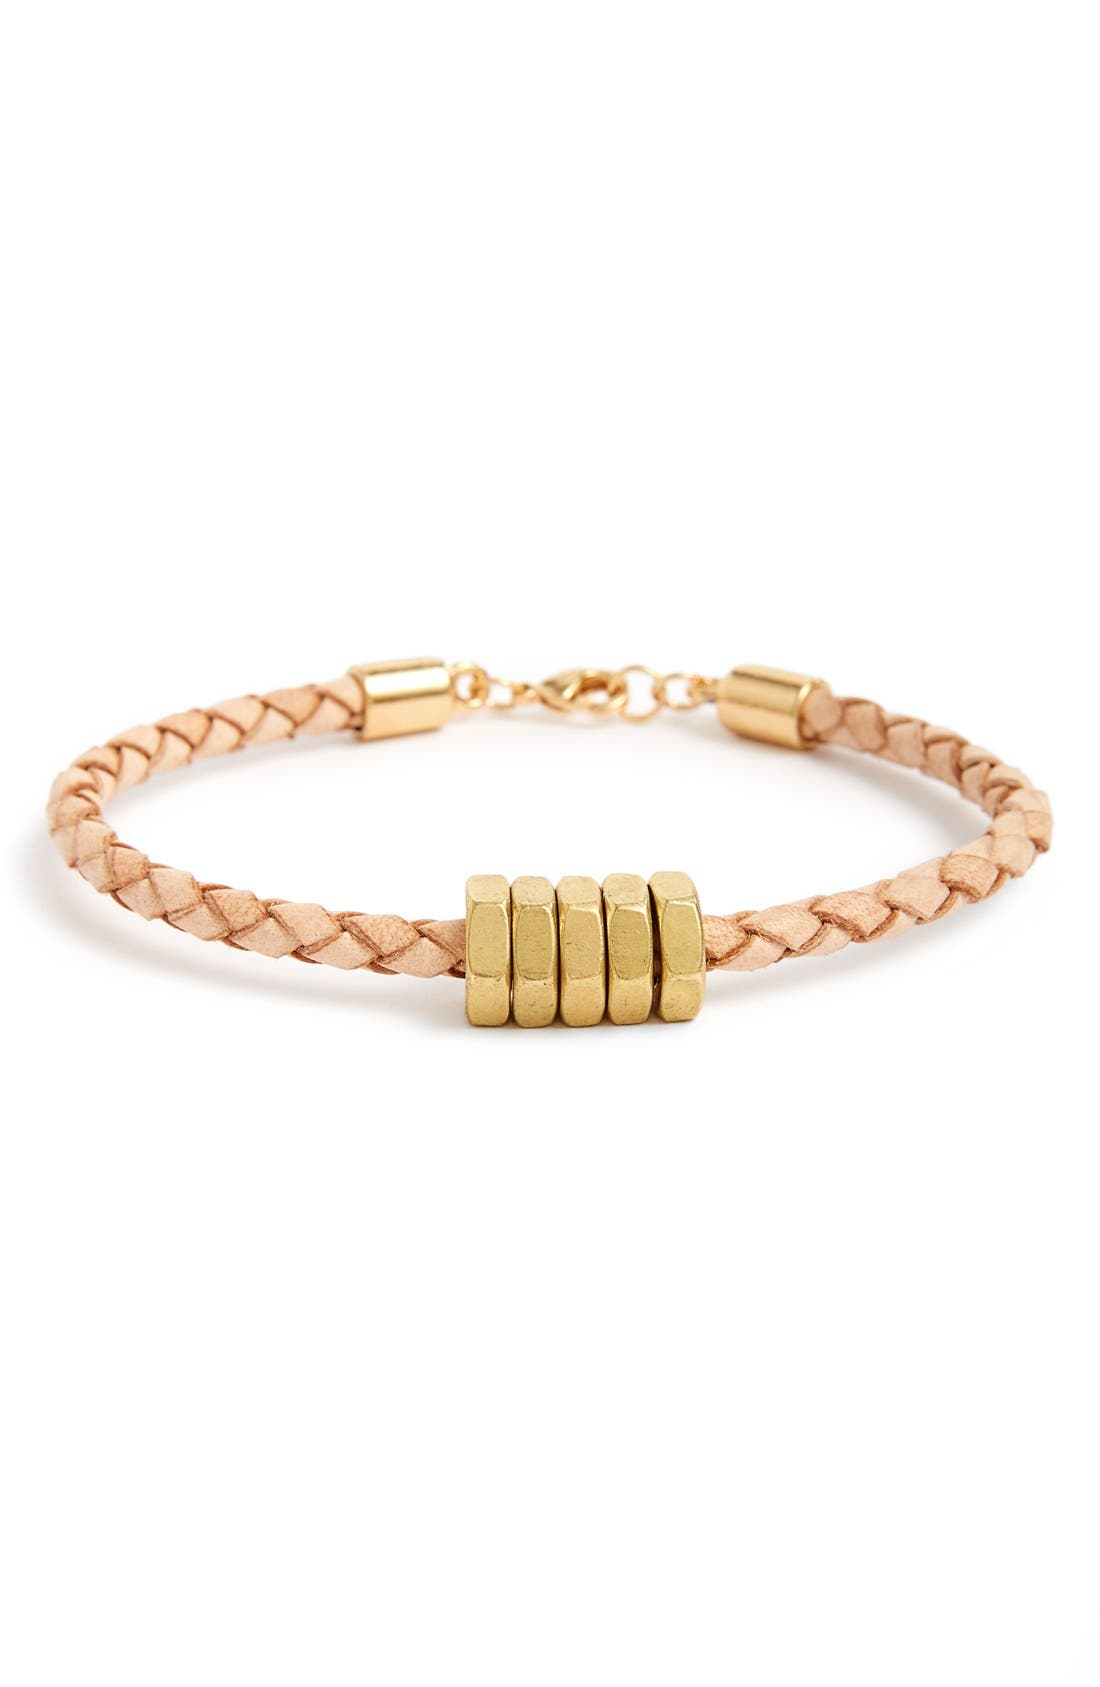 HALF UNITED 'Honeybee' Braided Leather Bracelet